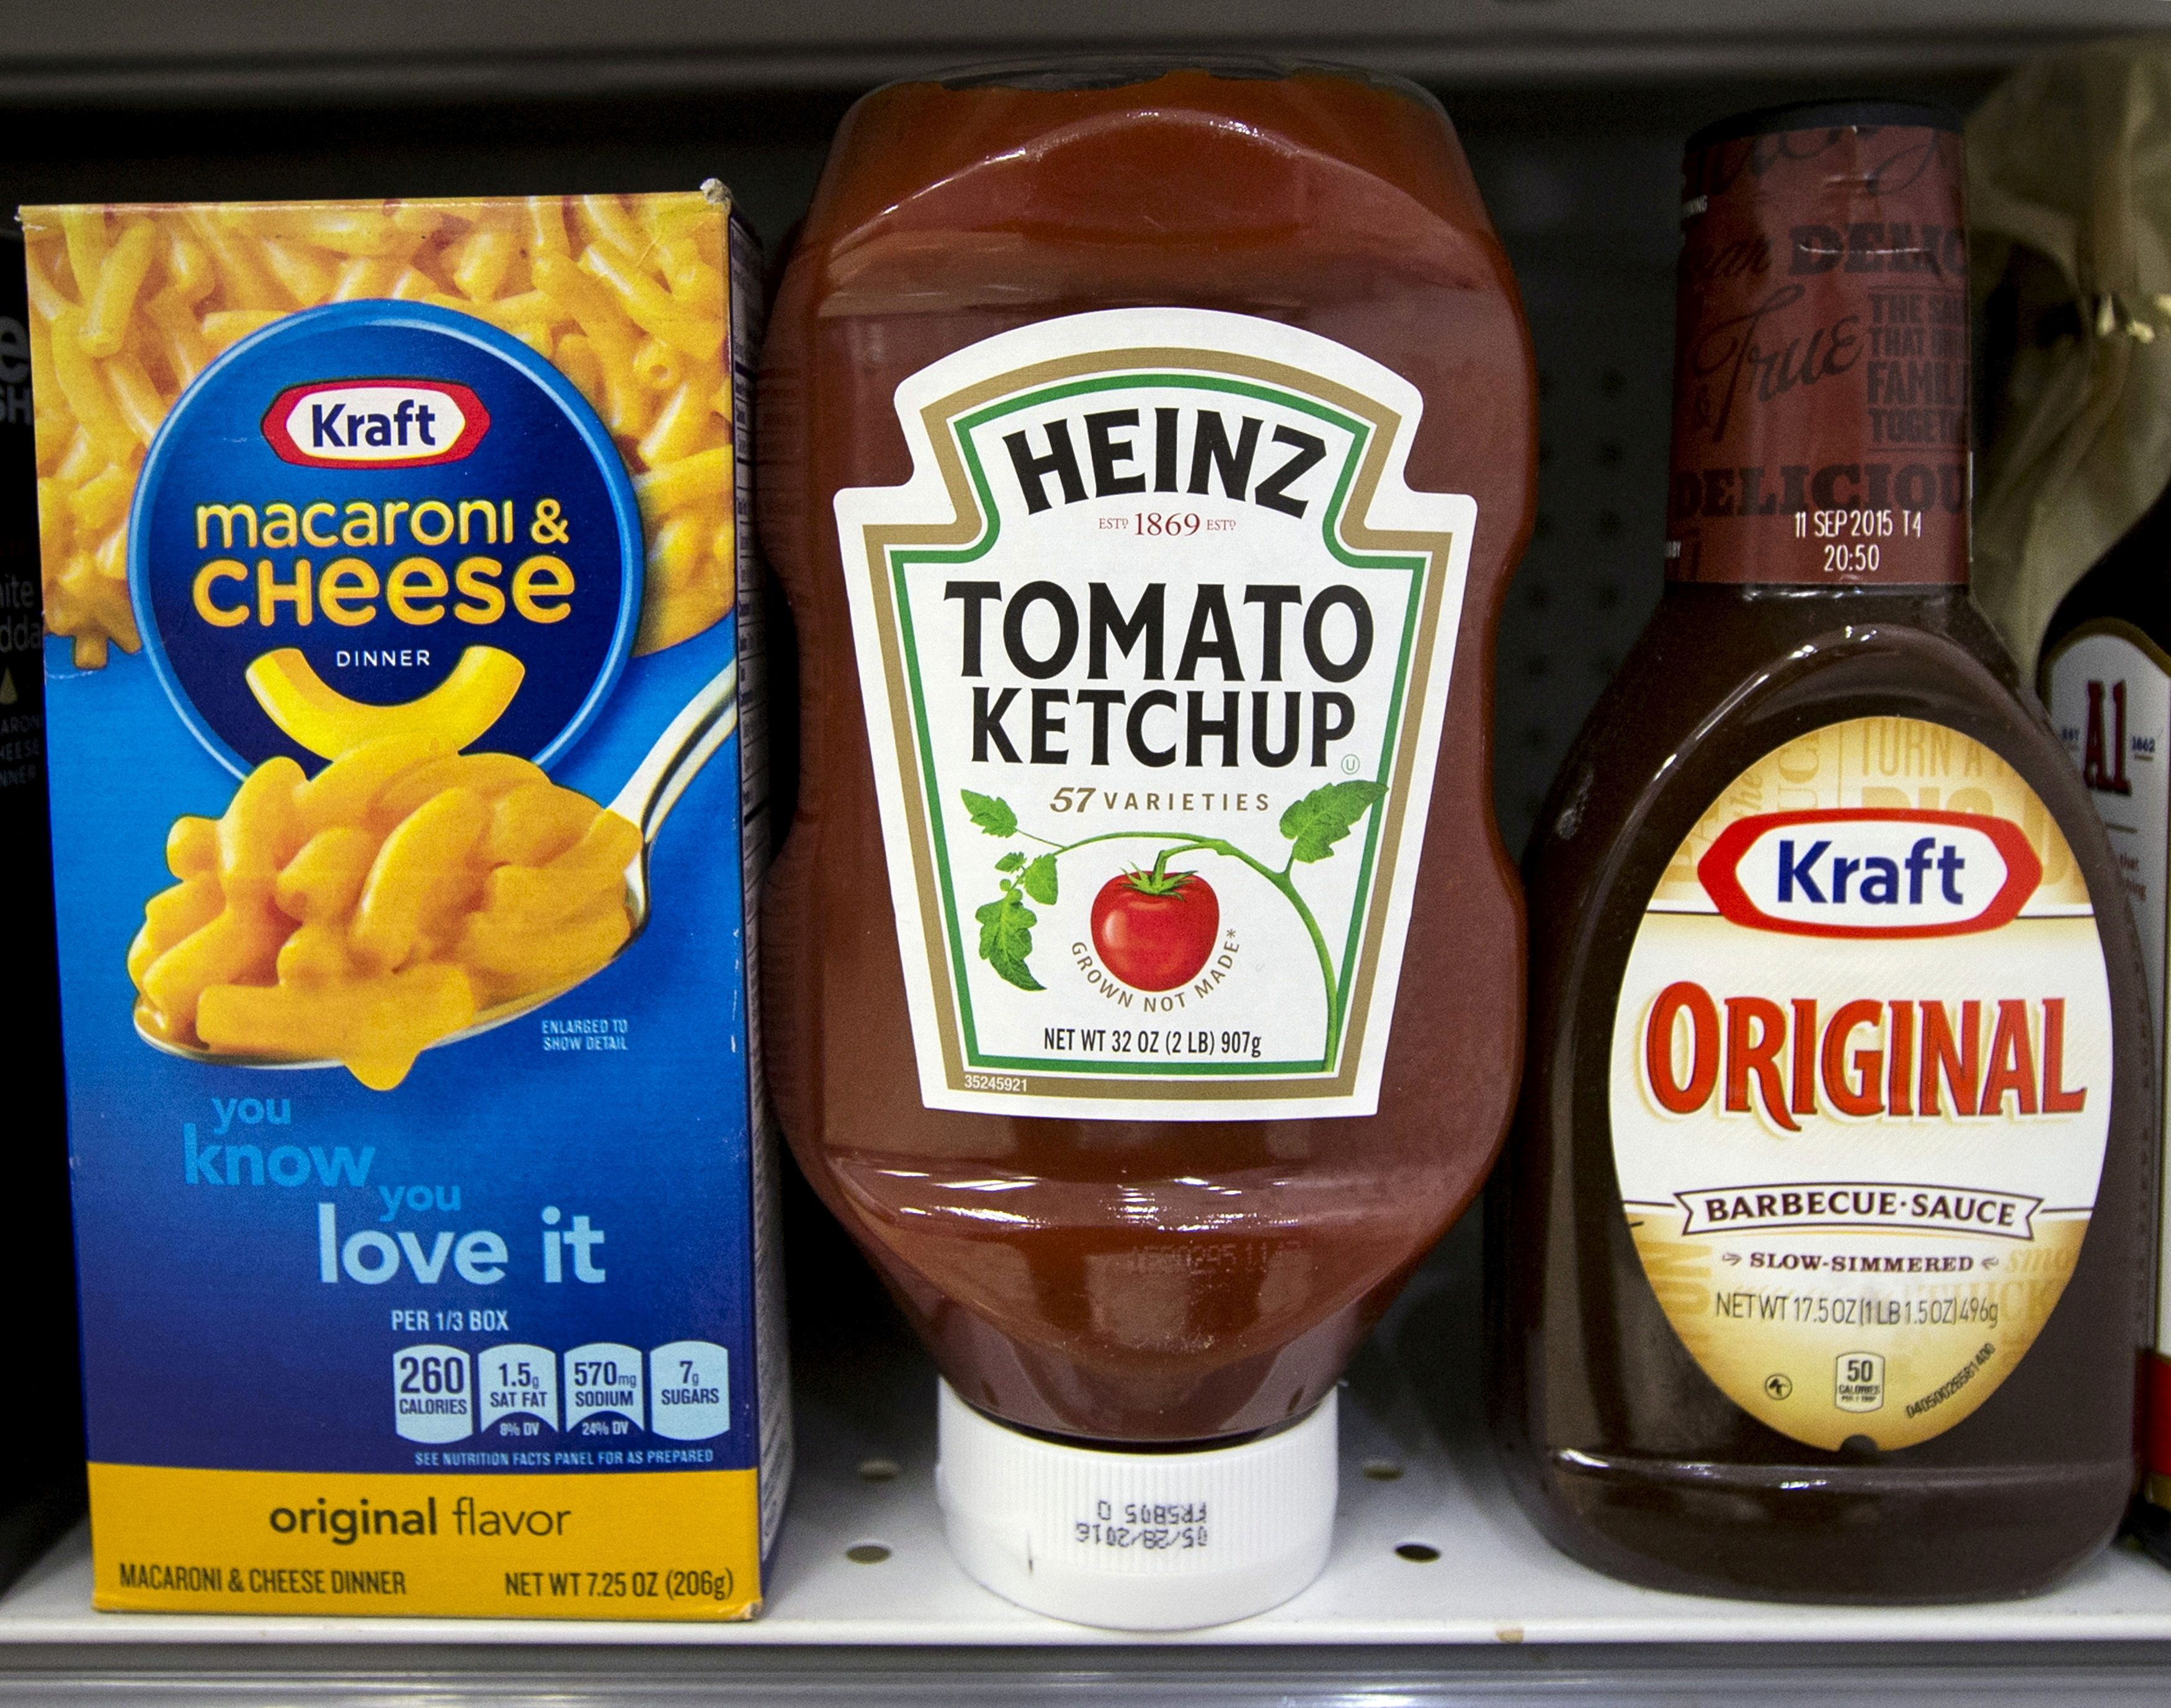 A Heinz Ketchup bottle sits between a box of Kraft macaroni and cheese and a bottle of Kraft Original Barbecue Sauce on a grocery store shelf in New York March 25, 2015.  REUTERS/Brendan McDermid